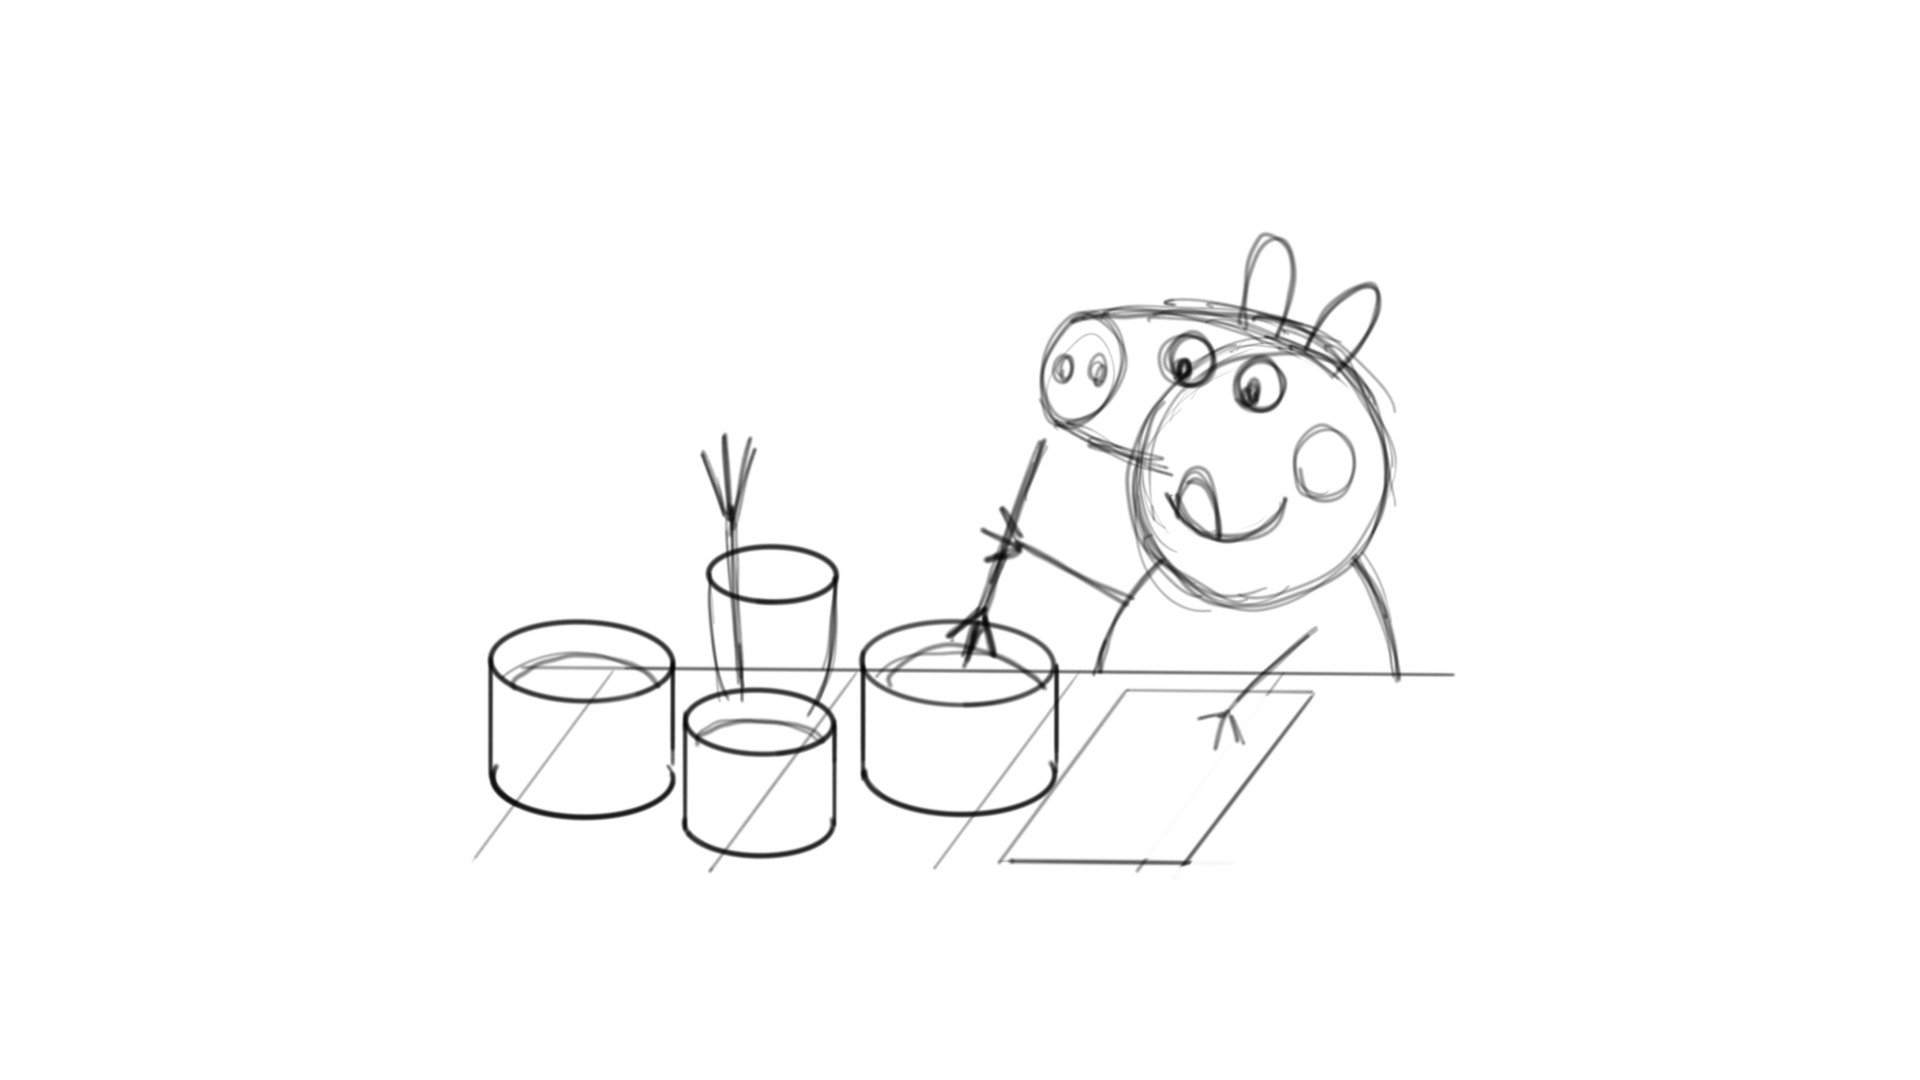 Dibujando A Peppa Pig / Drawing Peppa Pig On Samsung Galaxy Tab A With S Pen